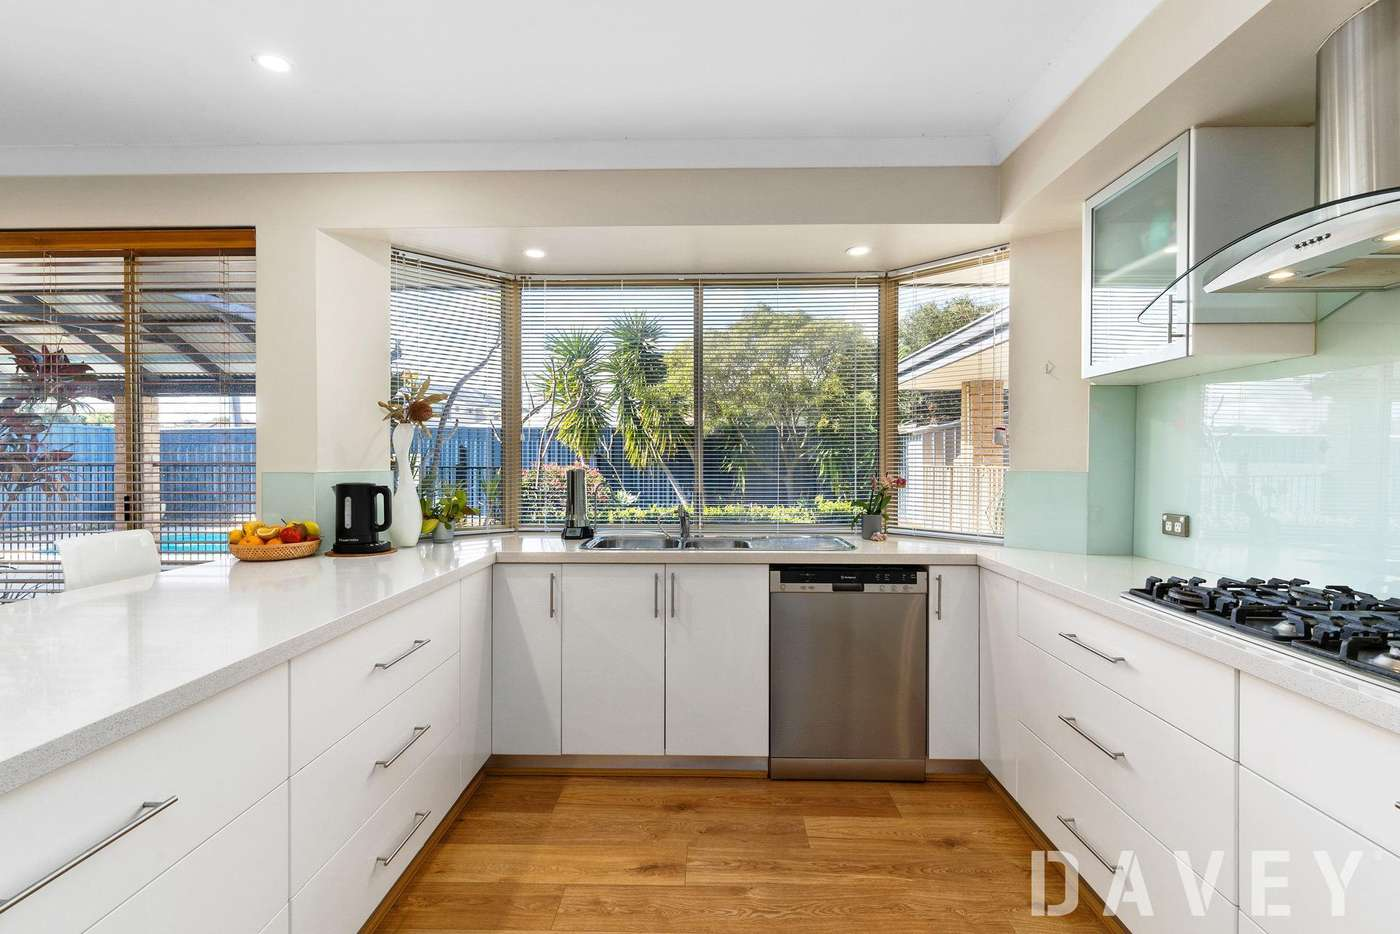 Main view of Homely house listing, 20 Melissa Street, Duncraig WA 6023